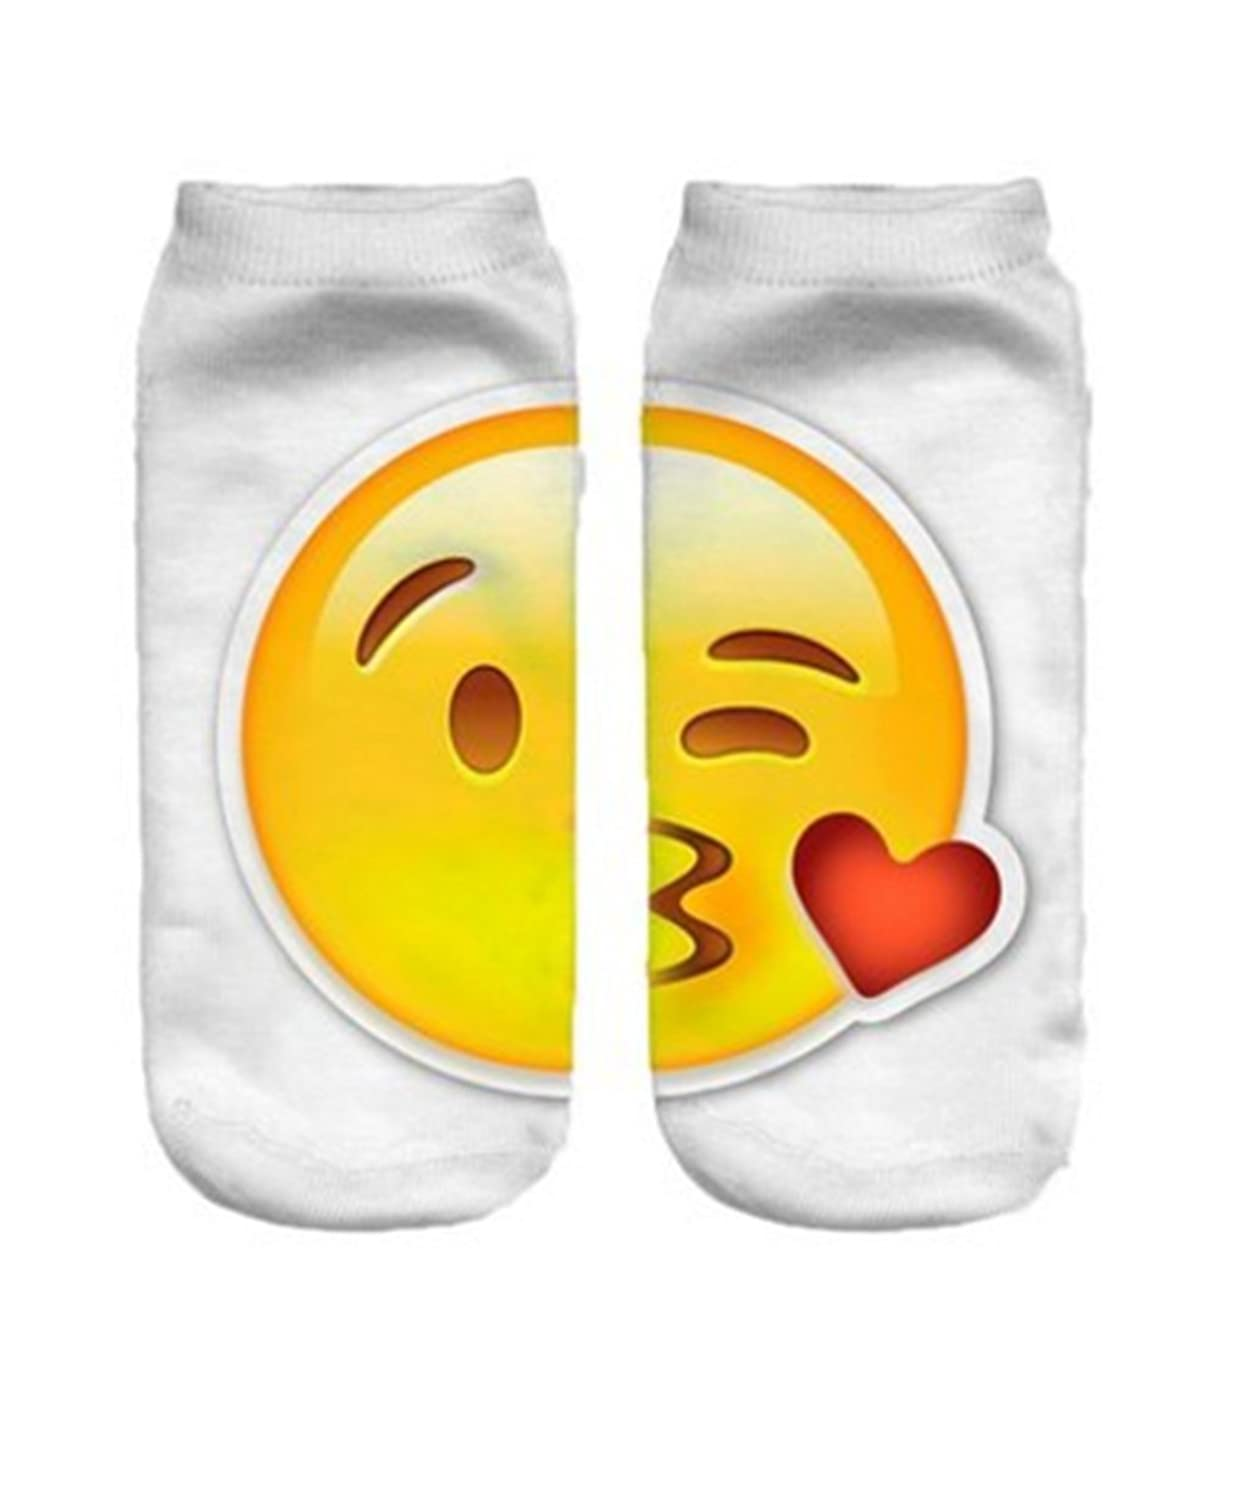 2 Pairs Funny Cartoon 3D Print Emoticon Face Socks Unisex Style Low Cut Ankle Socks